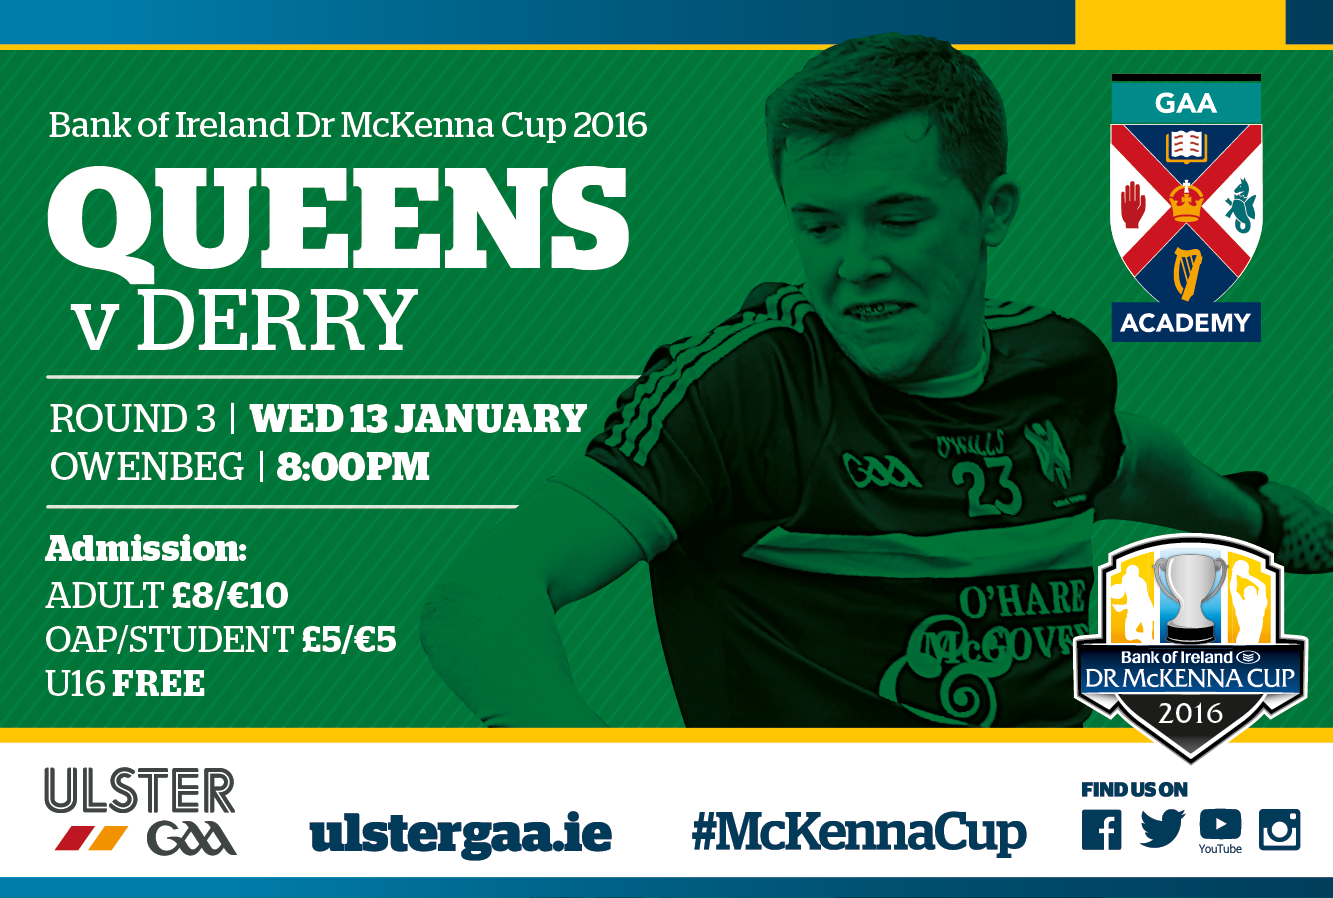 UPDATED: Round 3 Dr McKenna Cup in Celtic Park